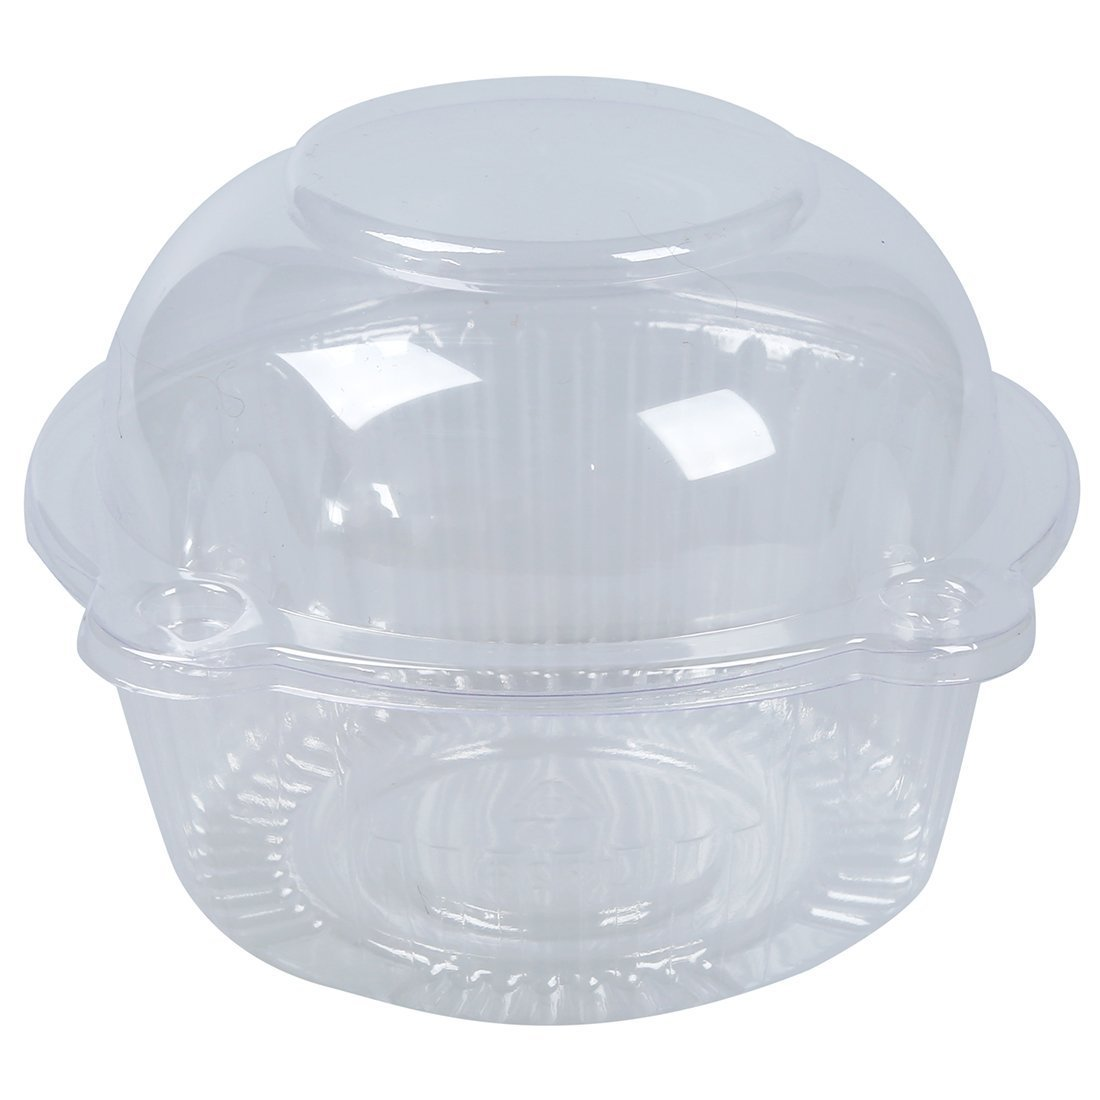 SODIAL(R) 50 x Single Plastic Clear Cupcake Holder / Cake Container Dome Muffin Carrier TRTA11A